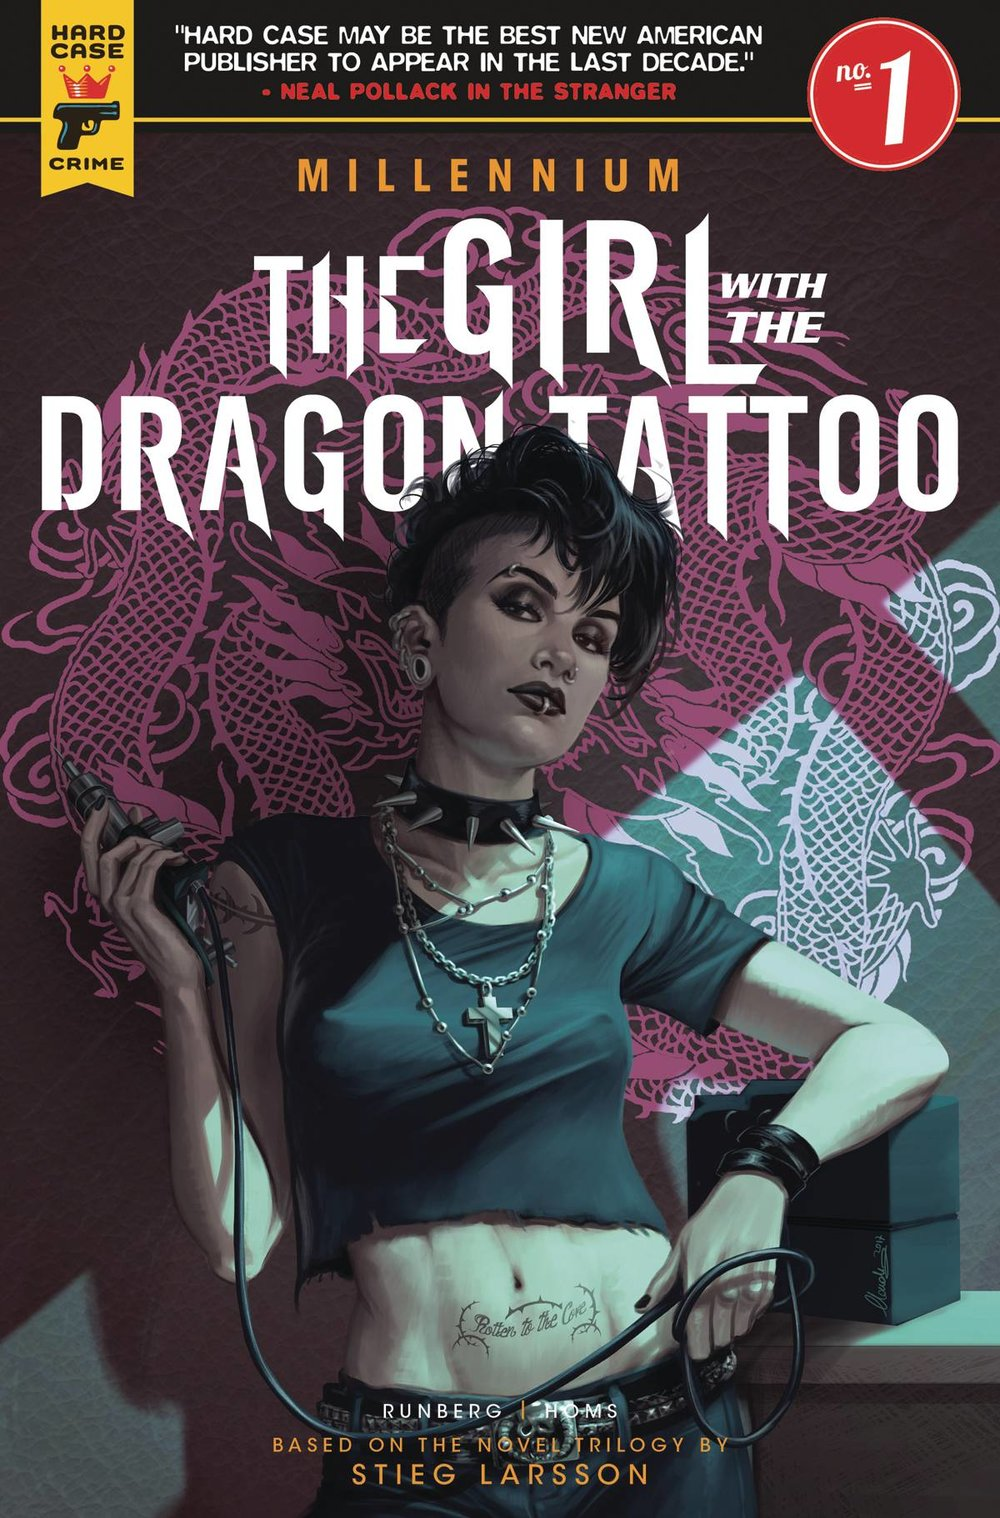 MILLENNIUM GIRL WITH THE DRAGON TATTOO 1 CVR A IANNICIELLO.jpg